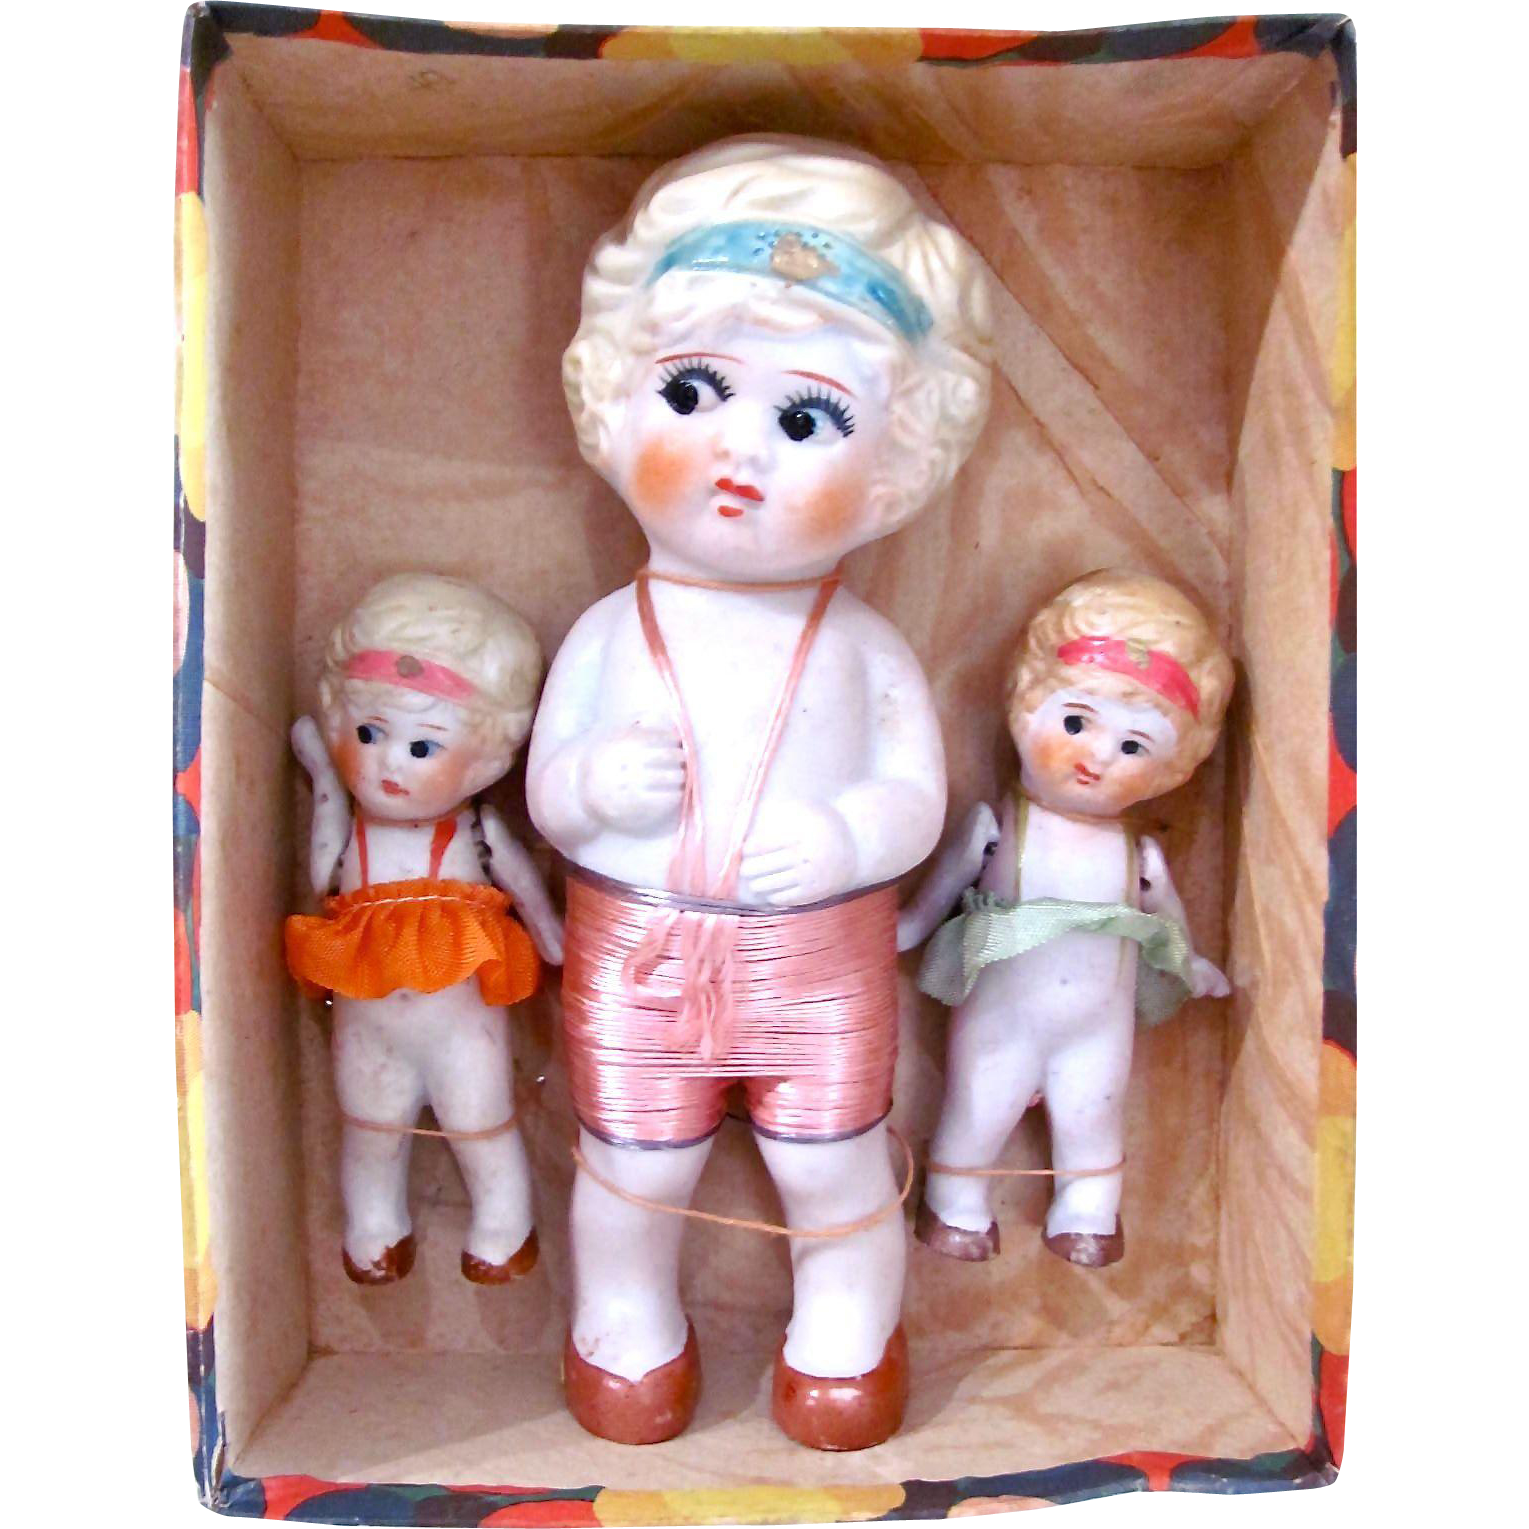 Set of 3 All Bisque Kewpie-Type Dolls Never Removed From Original Box, Wide-eyed Flappers, Made In Japan, Vintage 1920s